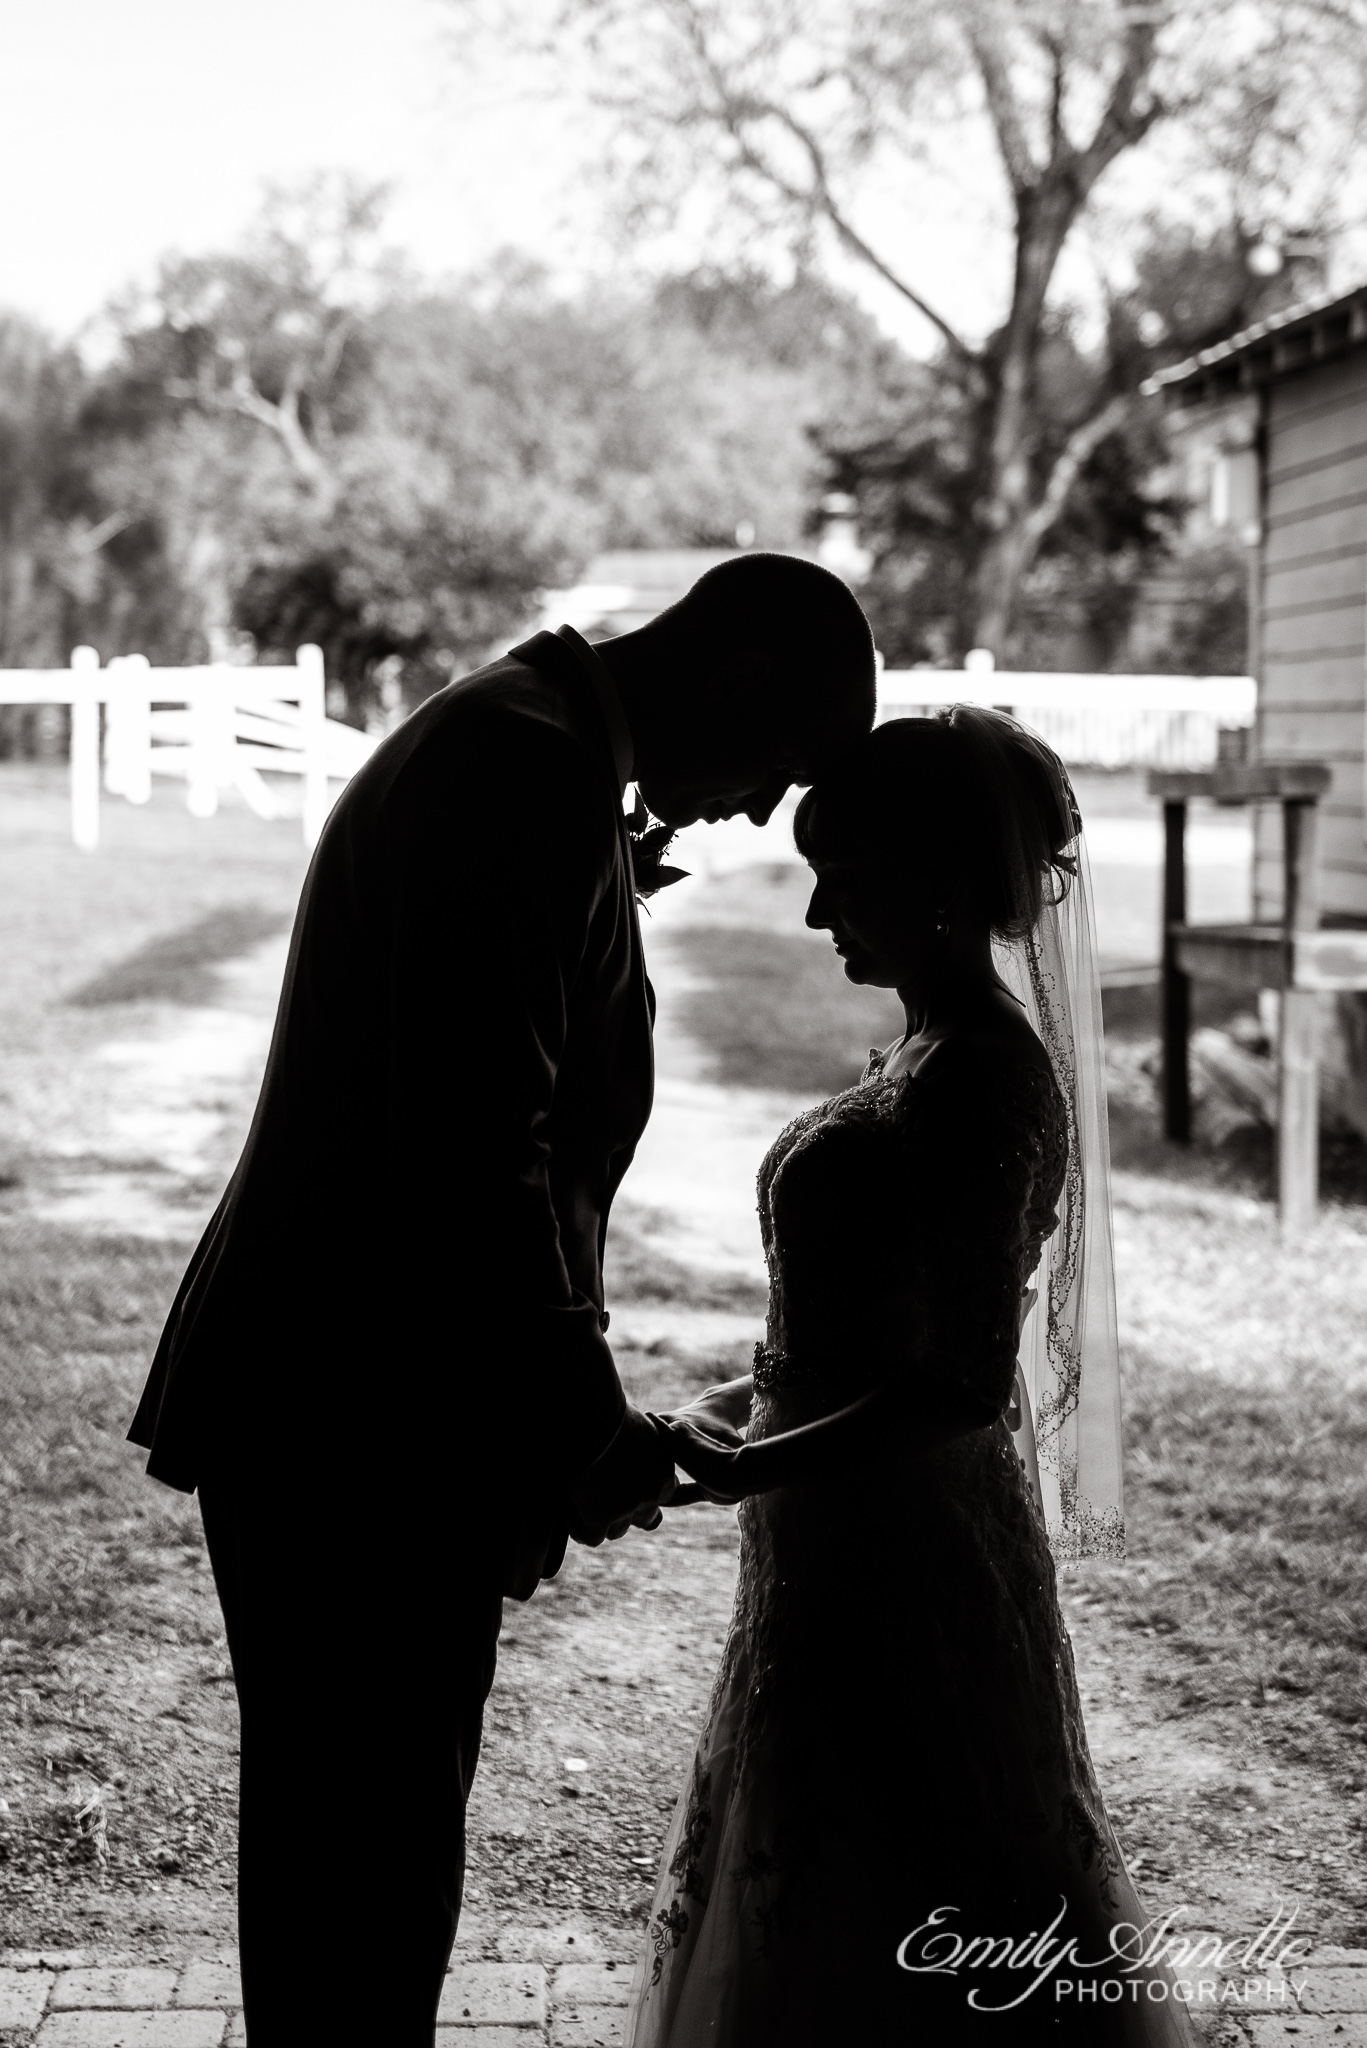 A silhouette of a bride and groom holding hands with foreheads together during their country wedding at Amber Grove near Richmond, Virginia